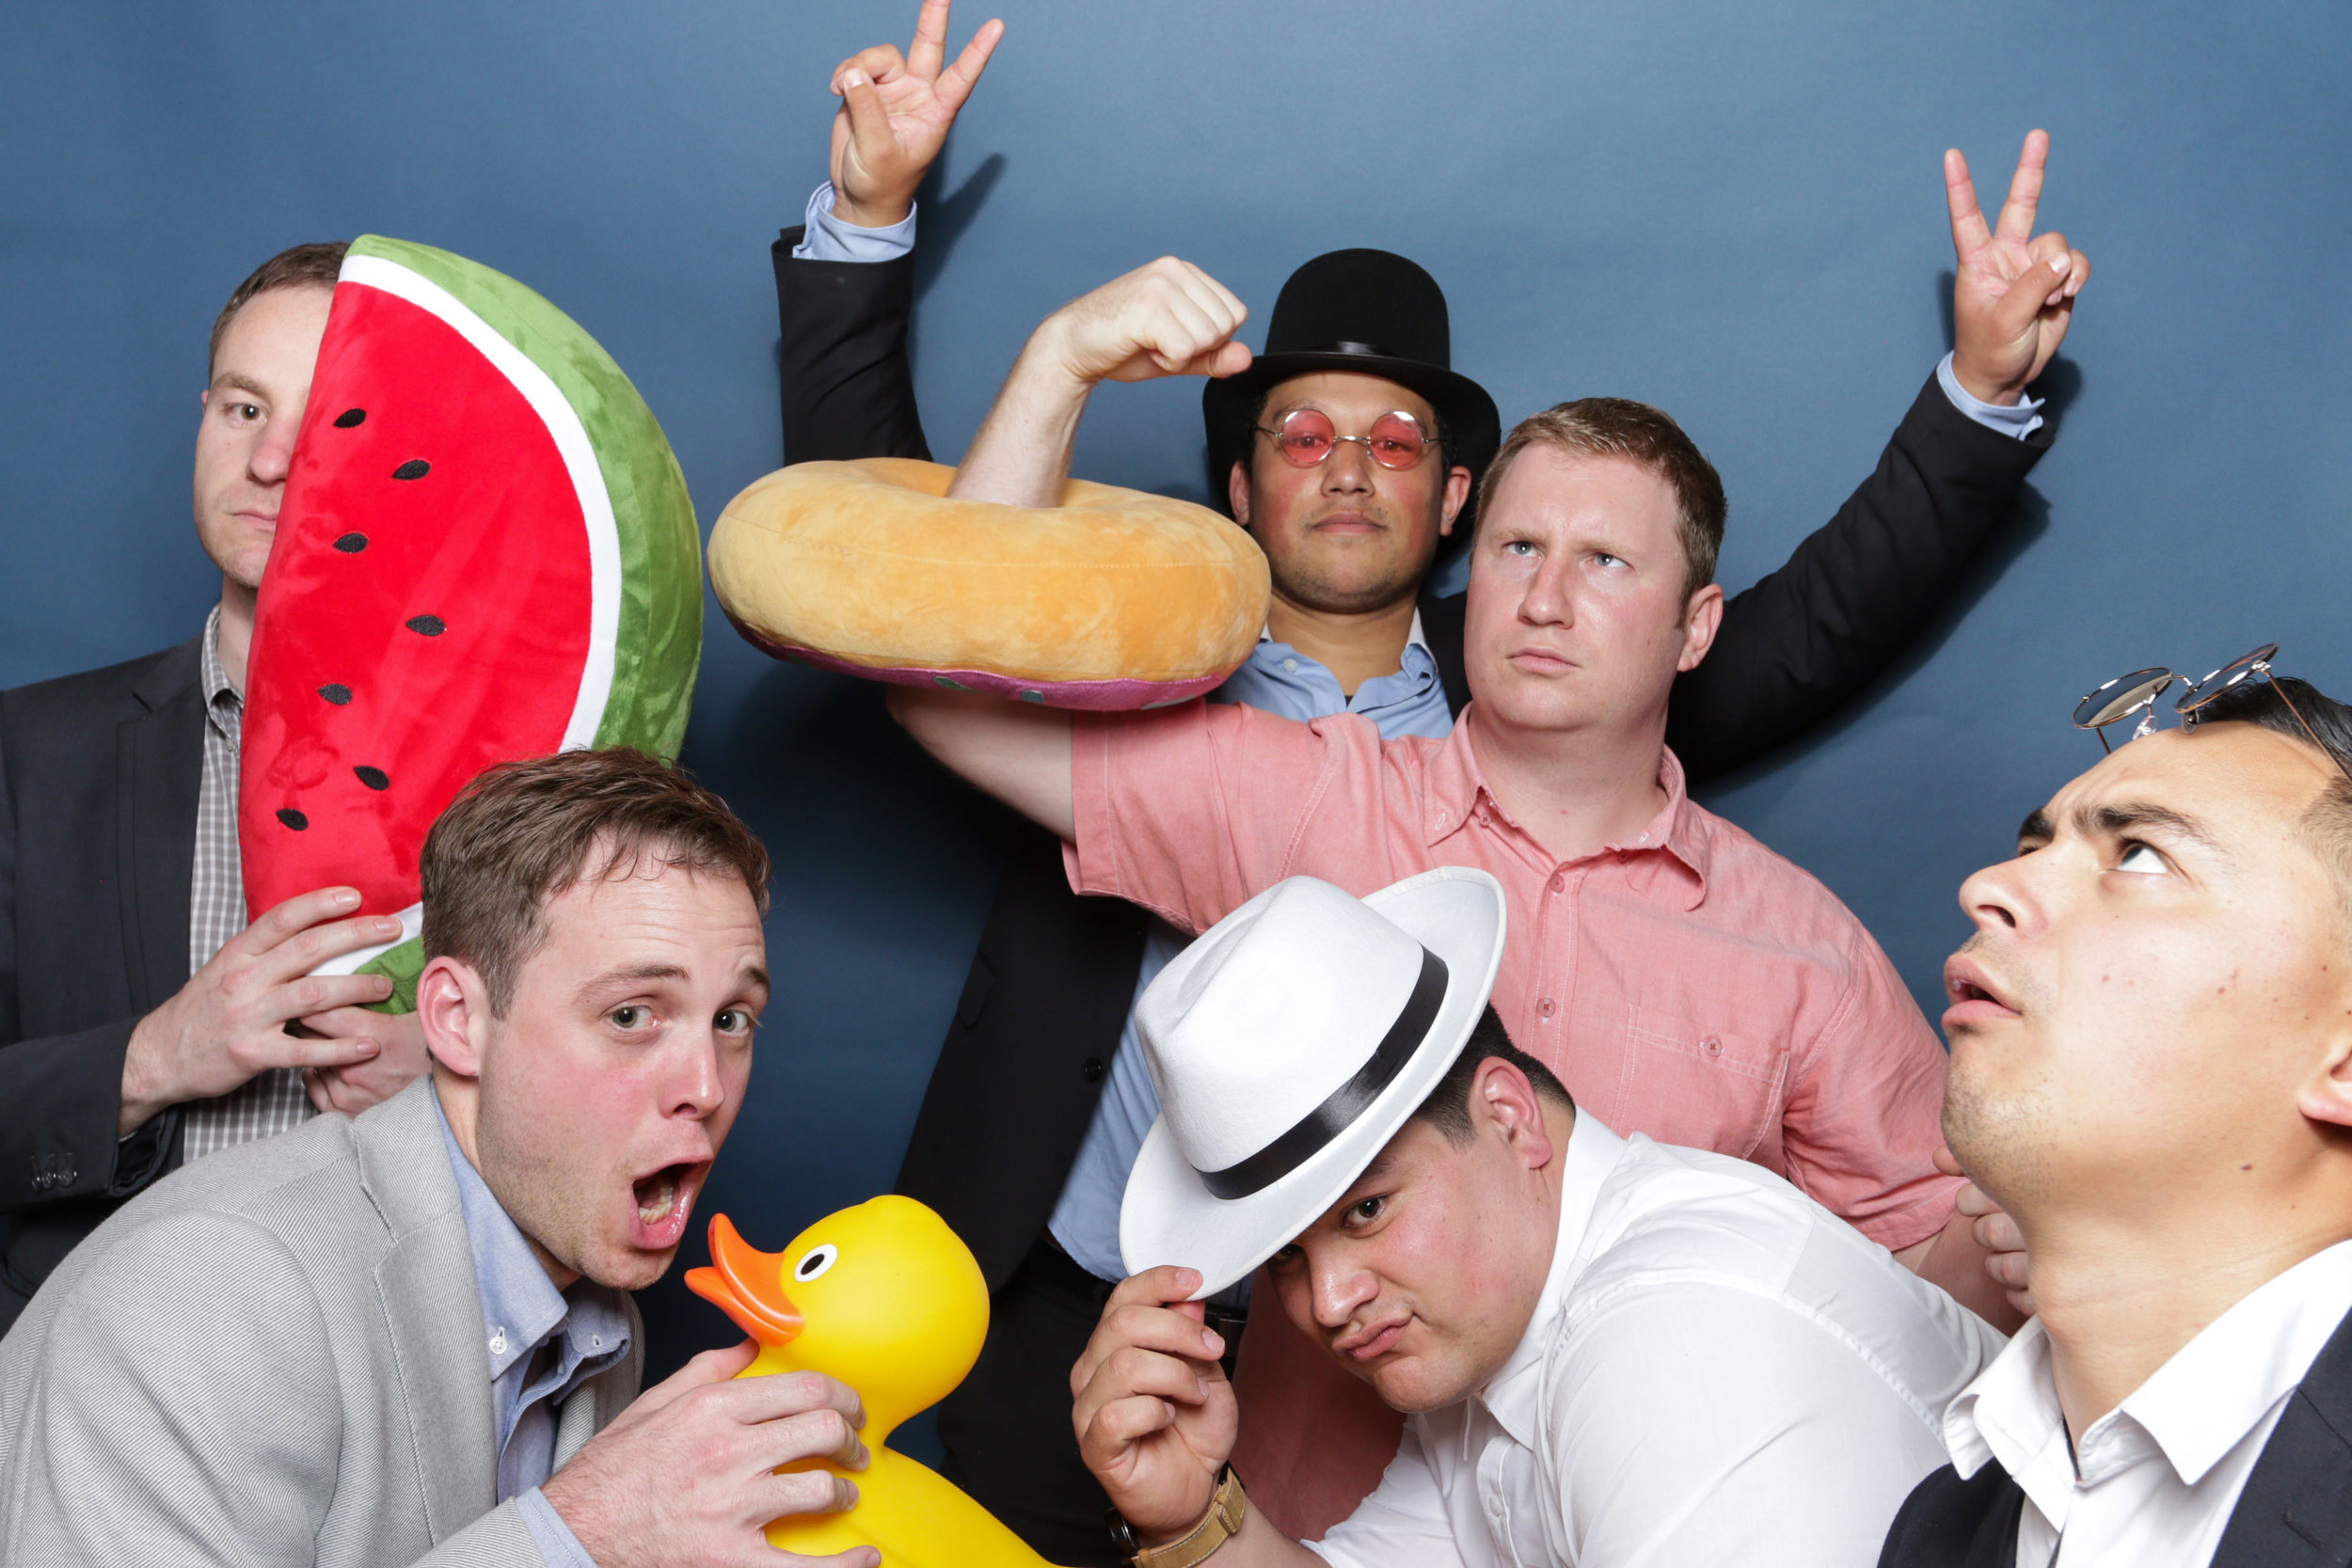 awesome-engagement-party-photo-booth-001.JPG